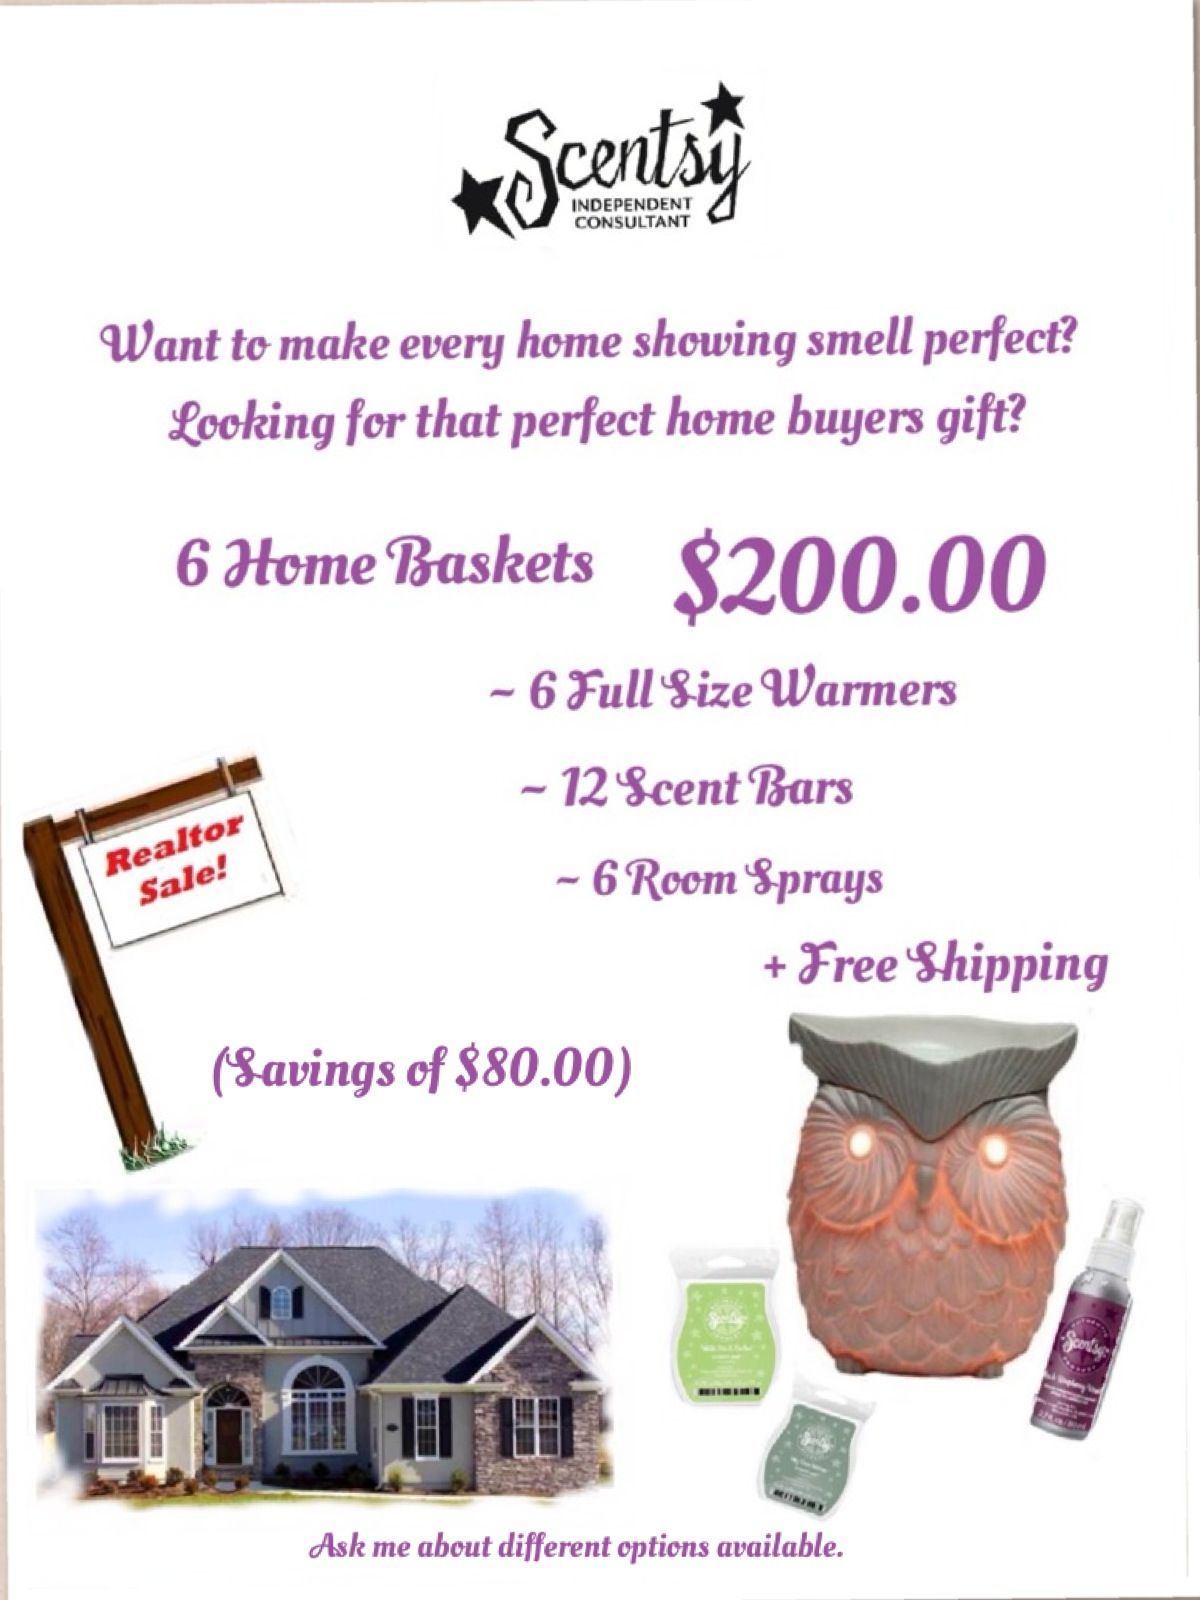 WickedlyWicklessScents@gmail.com Https://JennifersScents.Scentsy.us ...